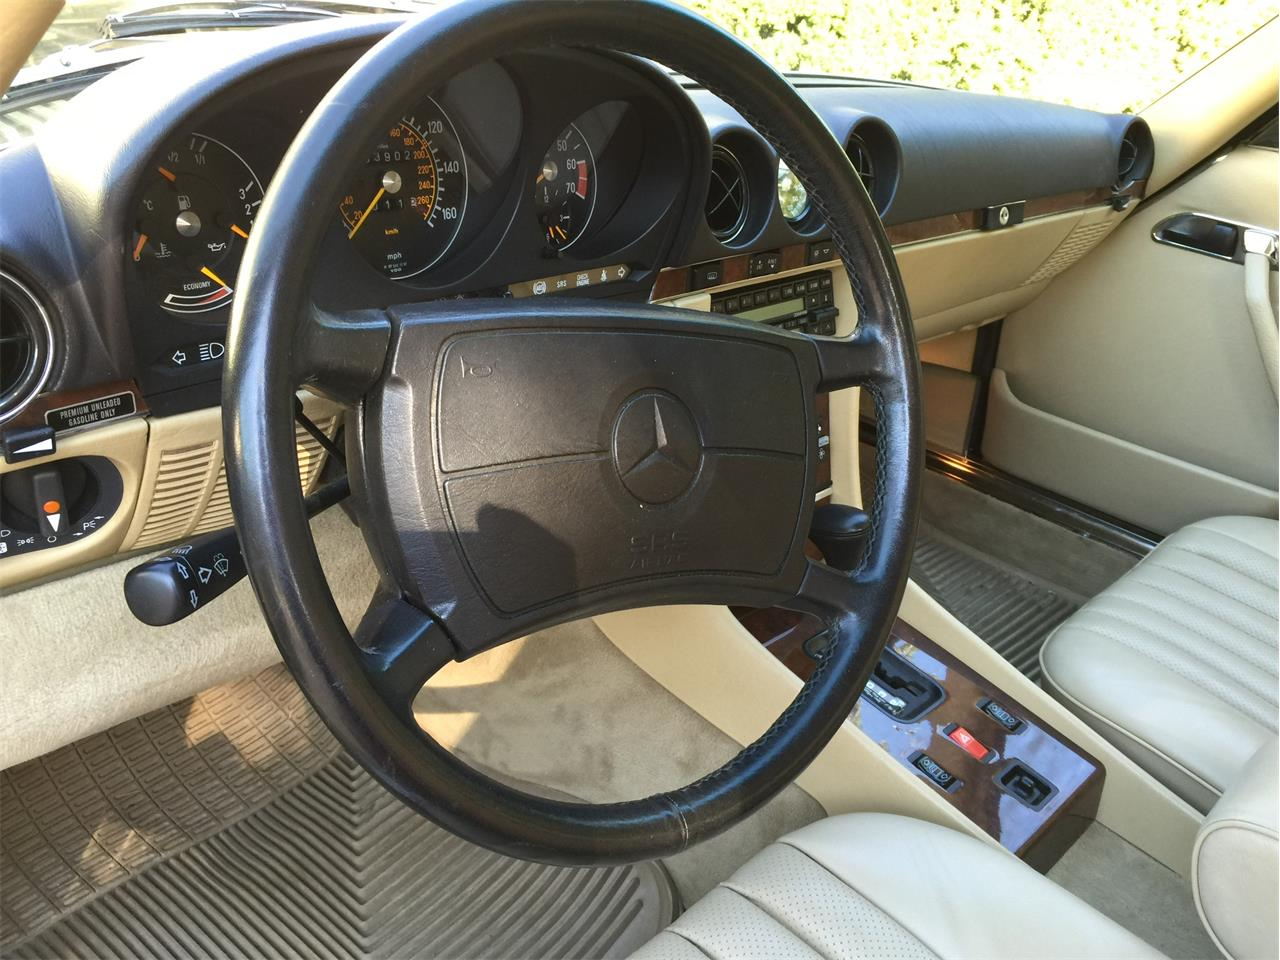 1989 Mercedes-Benz 560SL for sale in Mason, OH – photo 12